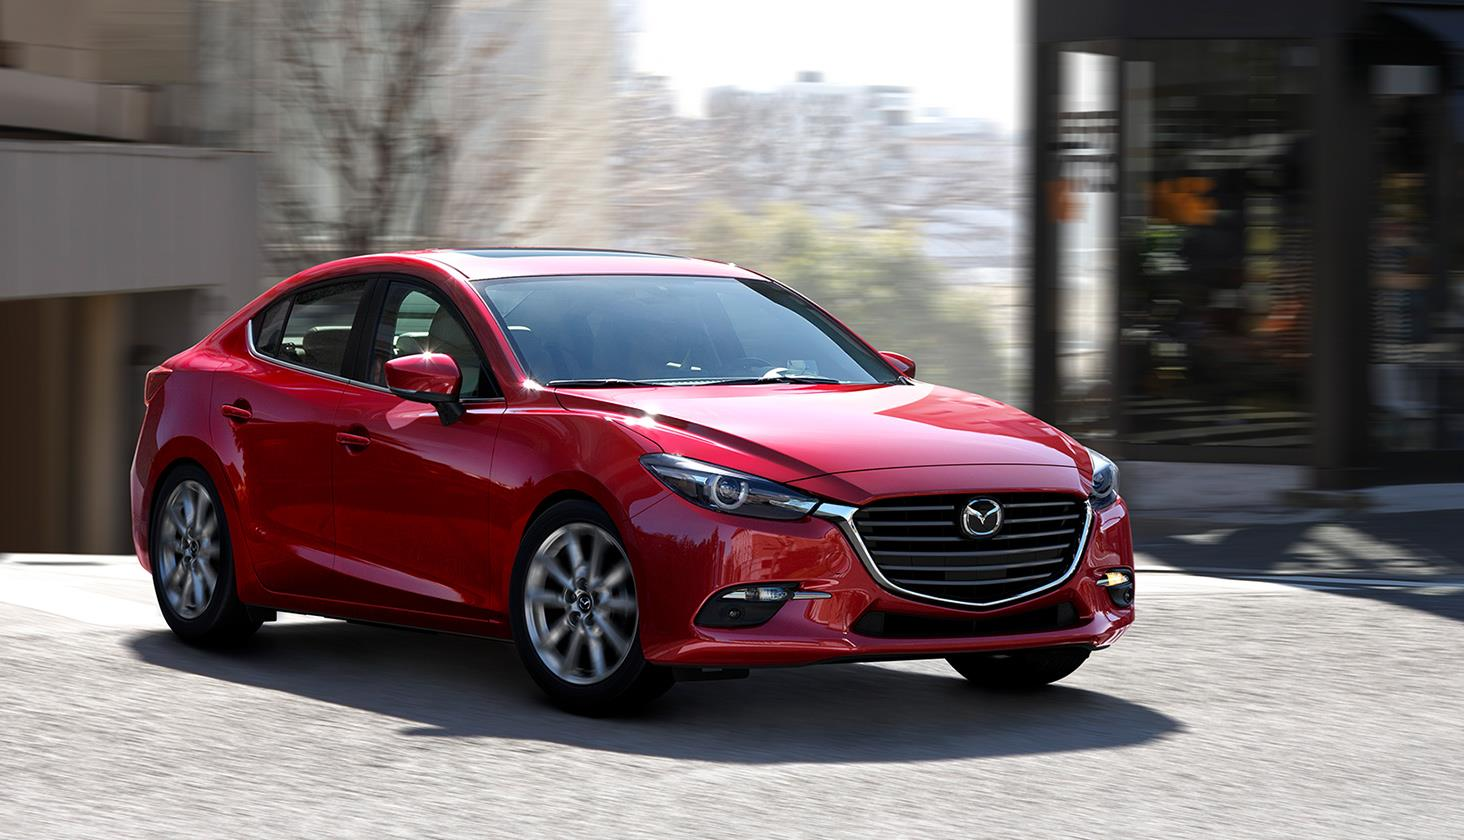 Mazda Of Hamilton Best New And Used Mazda Car Dealer In Hamilton - Mazda ontario dealers